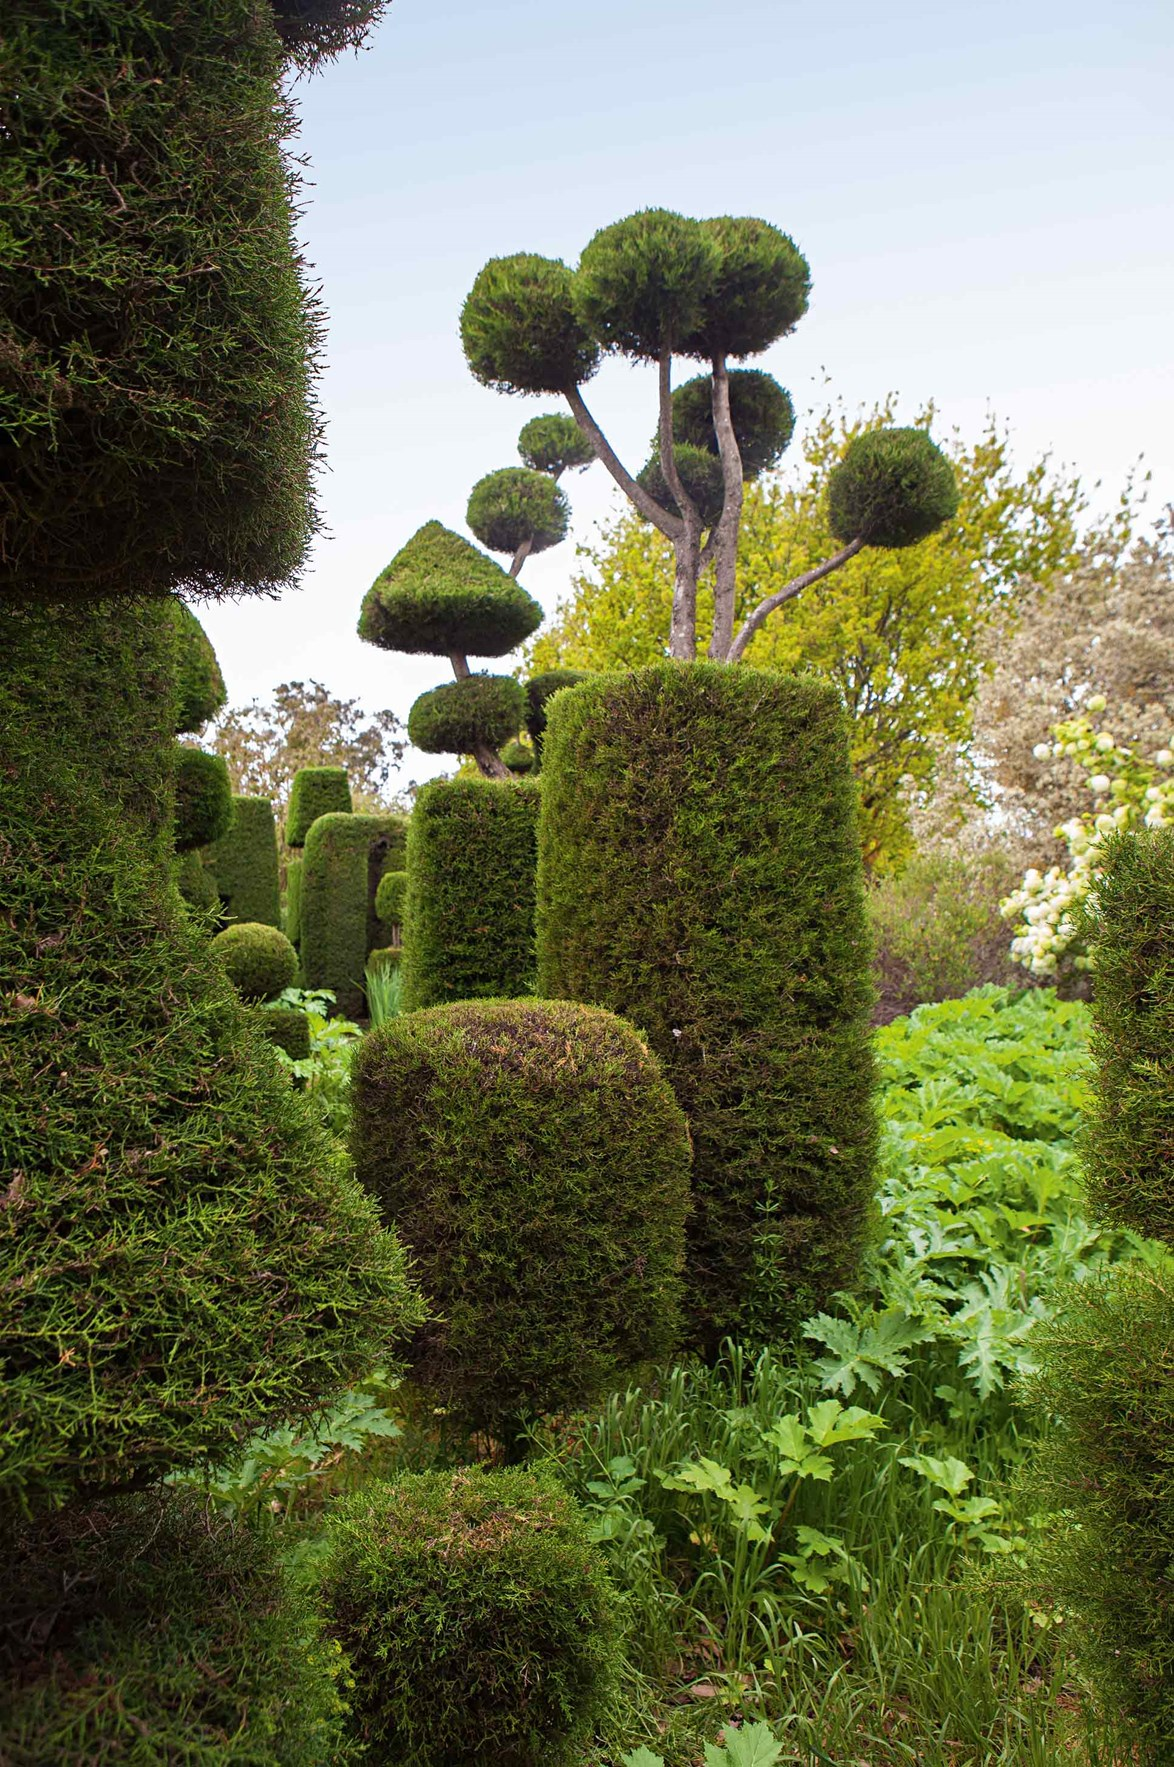 "**TOPIARY GARDEN**<P> <p>Gardening is an extremely creative, yet practical past-time to take up. But if you really want to take things to the next level, you could try your hand at [topiary](https://www.homestolove.com.au/how-to-create-a-topiary-ball-10182|target=""_blank""). Make like Edward Scissorhands and create living sculptures from perennial trees and hedging plants such as European box, holly or privet. But be warned, it takes practice and patience. In this [central Victorian topiary garden](https://www.homestolove.com.au/topiary-garden-in-central-victoria-13645